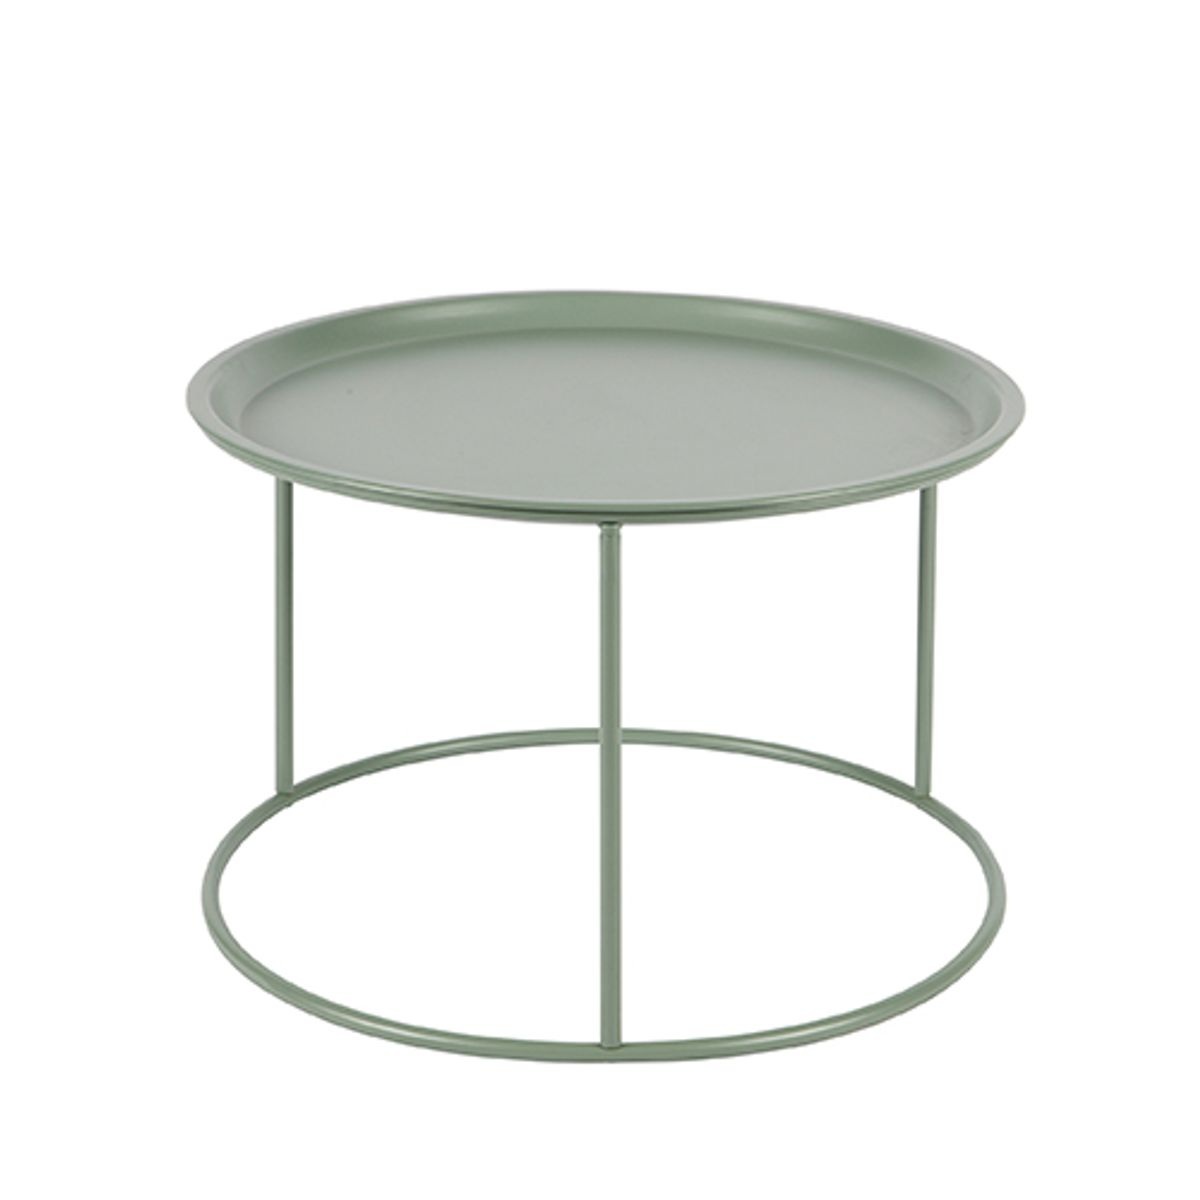 table basse ronde en m tal avec plateau amovible jade ivar decoclico. Black Bedroom Furniture Sets. Home Design Ideas